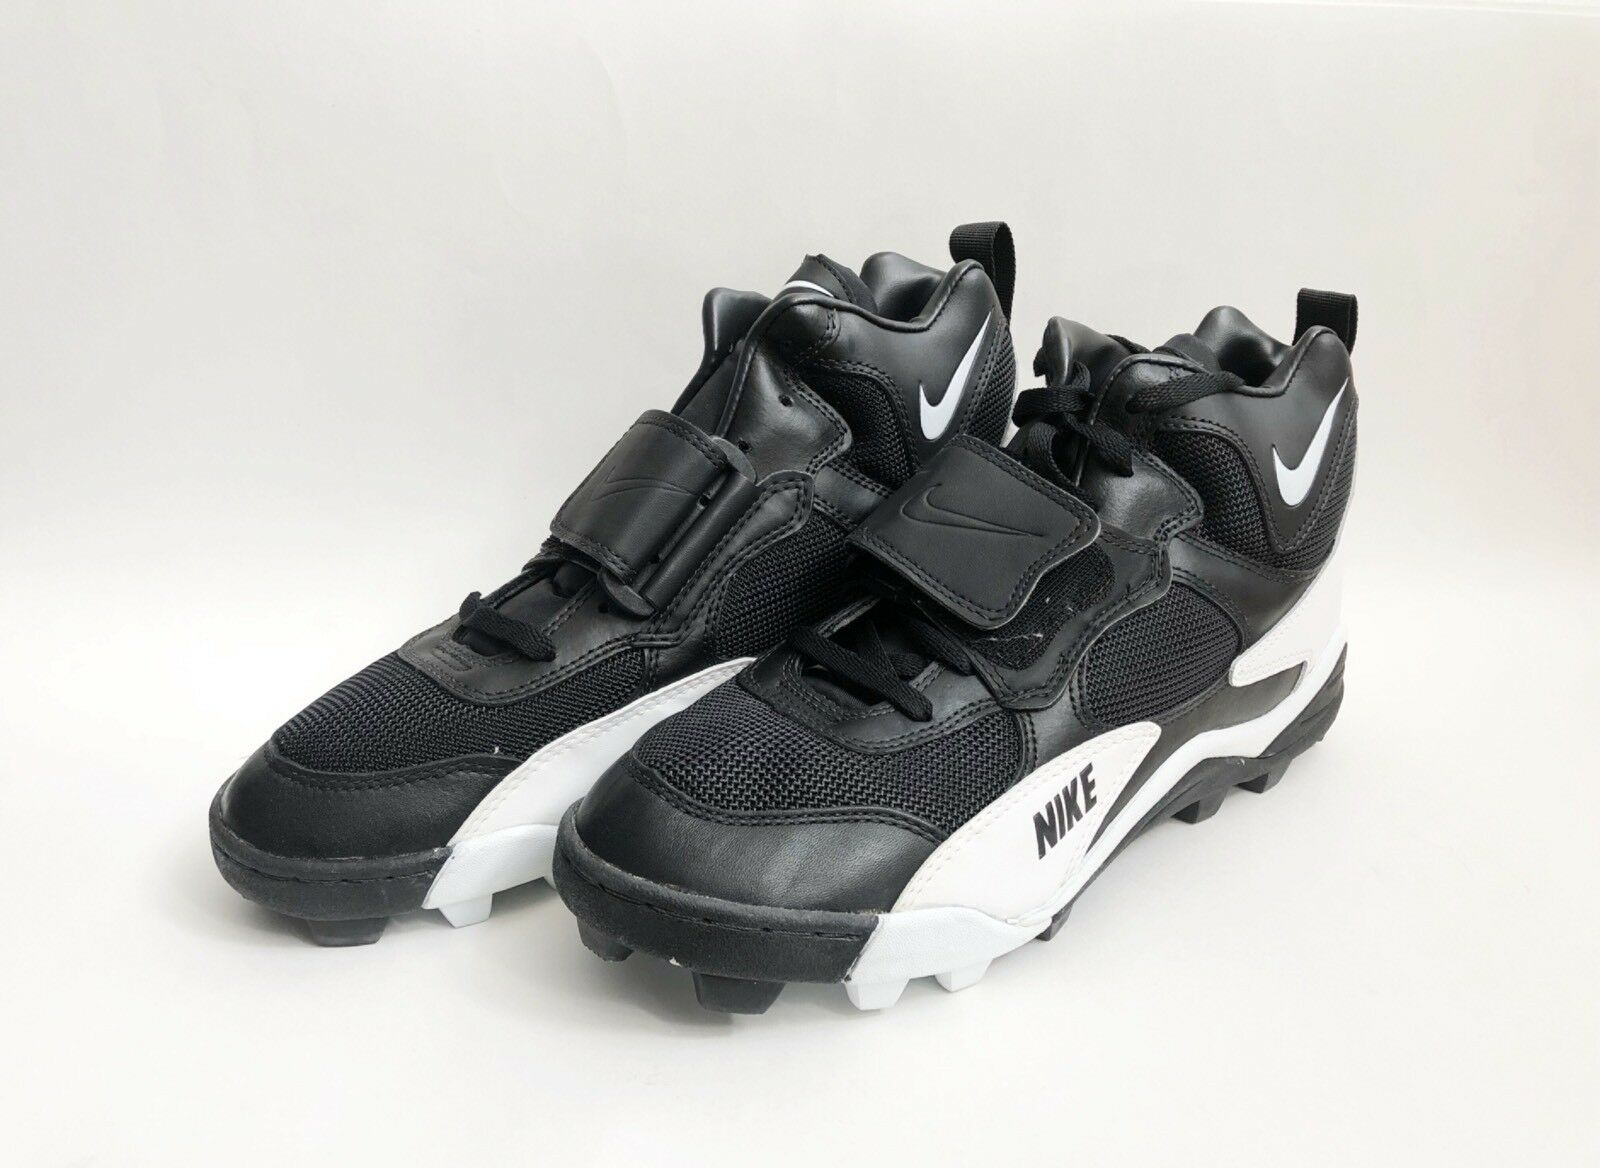 Vintage nike air speed shark football cleats mens size 13 deadstock NIB 1995